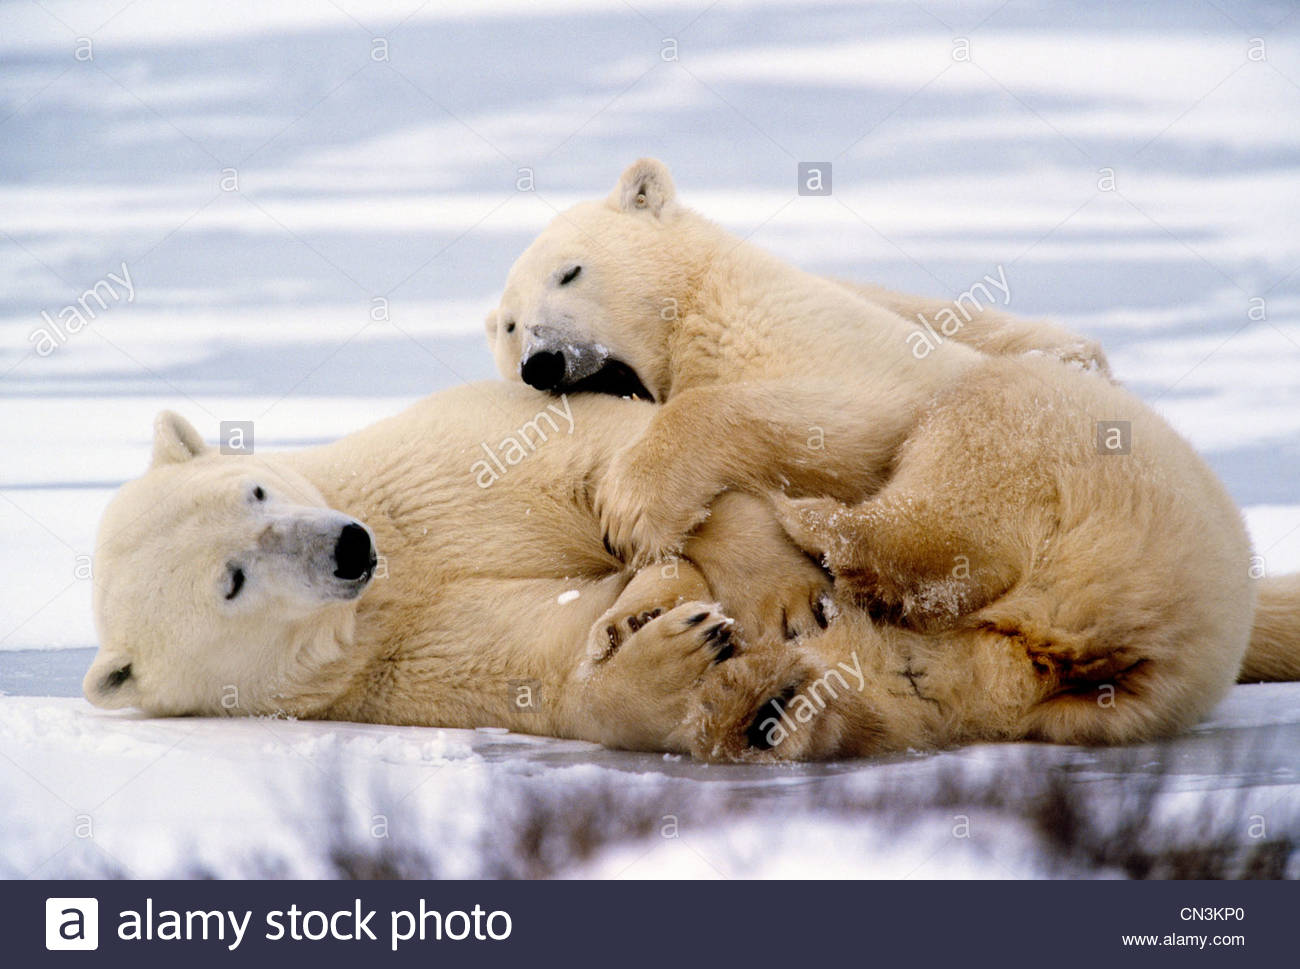 Polar bear plays with second year cub, Churchill, Manitoba, Canada - Stock Image